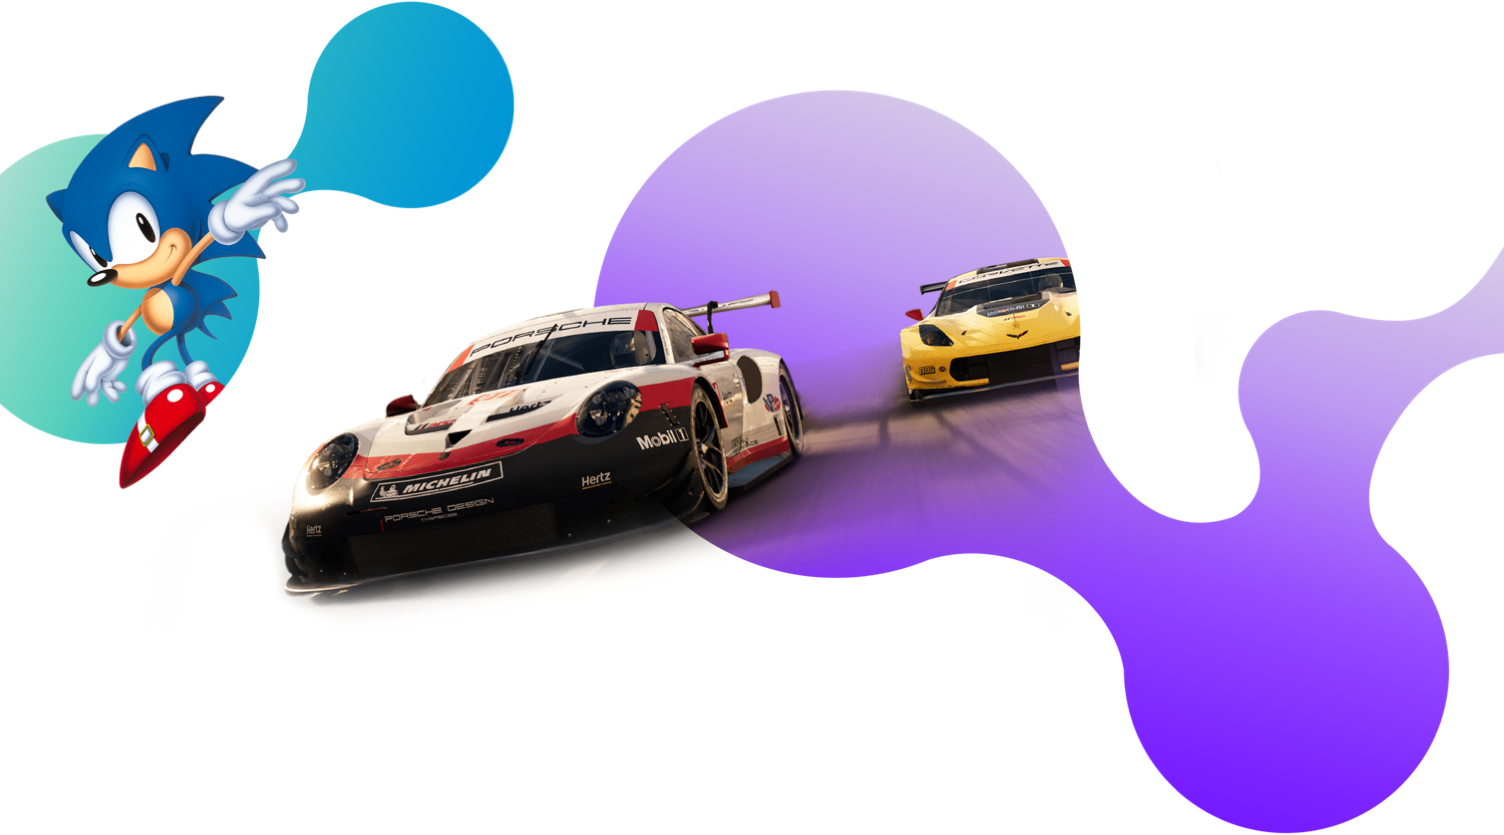 A background image featuring two race cars from Grid and Sonic the Hedgehog